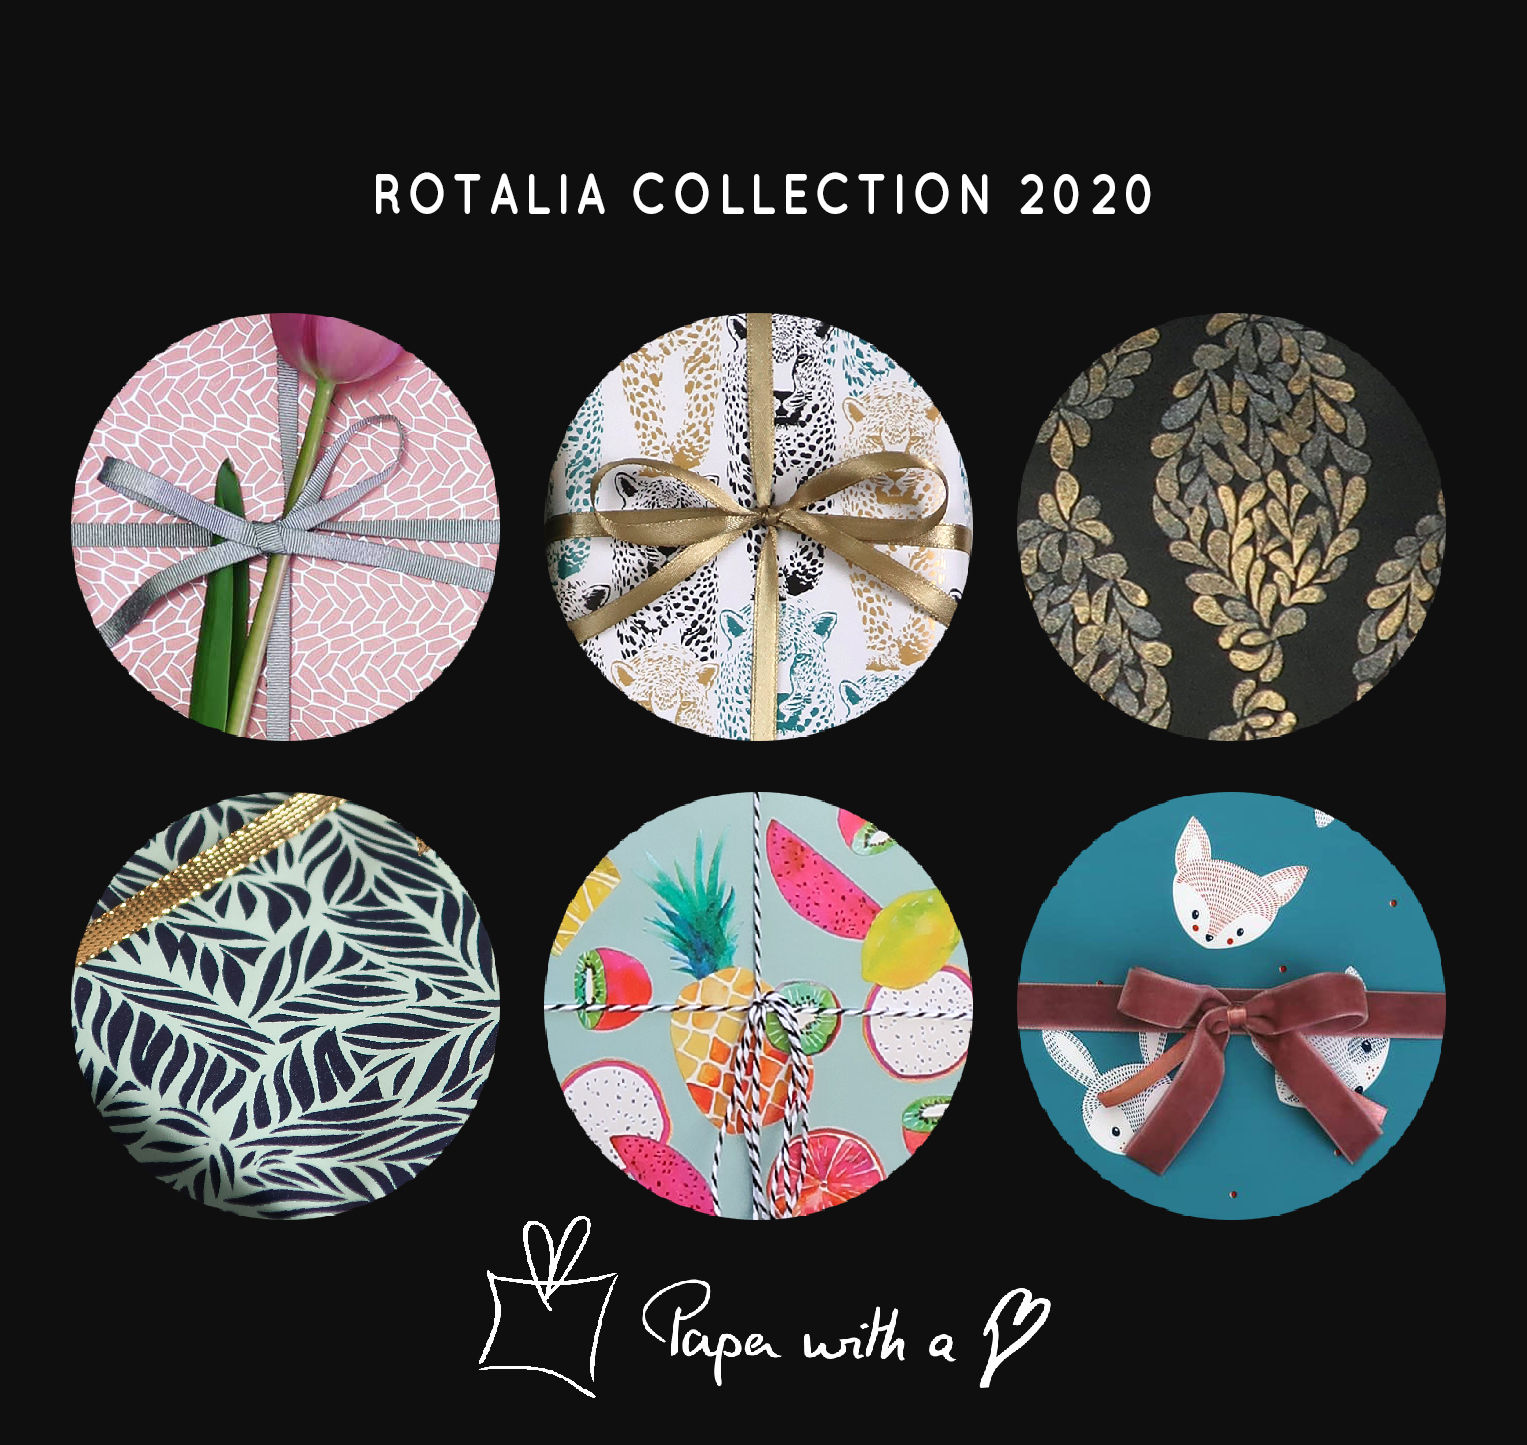 New Rotalia Collection 2020